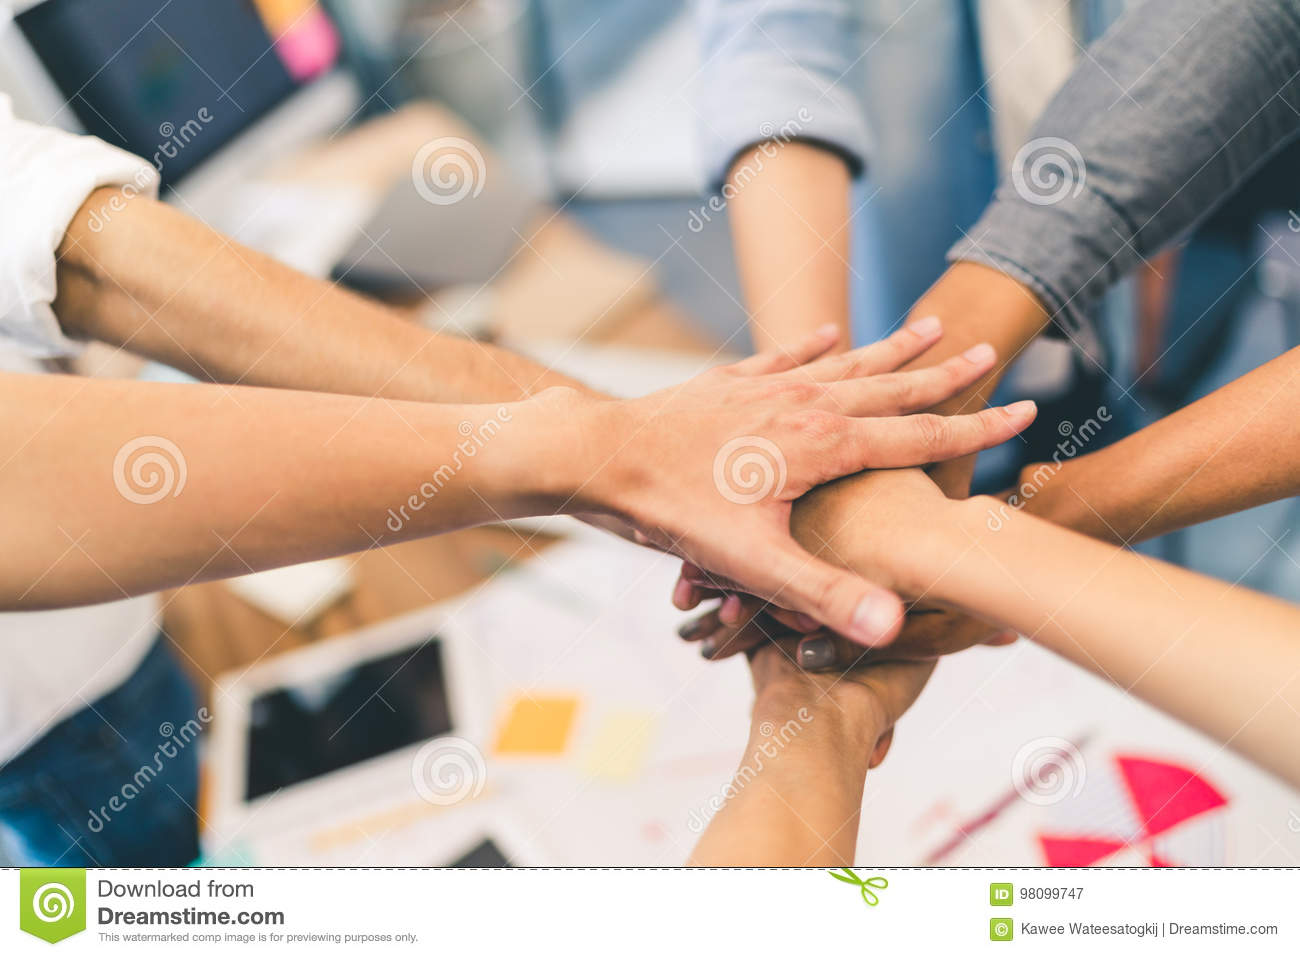 Business partners teamwork or friendship concept. Multiethnic diverse group of colleagues join hands together